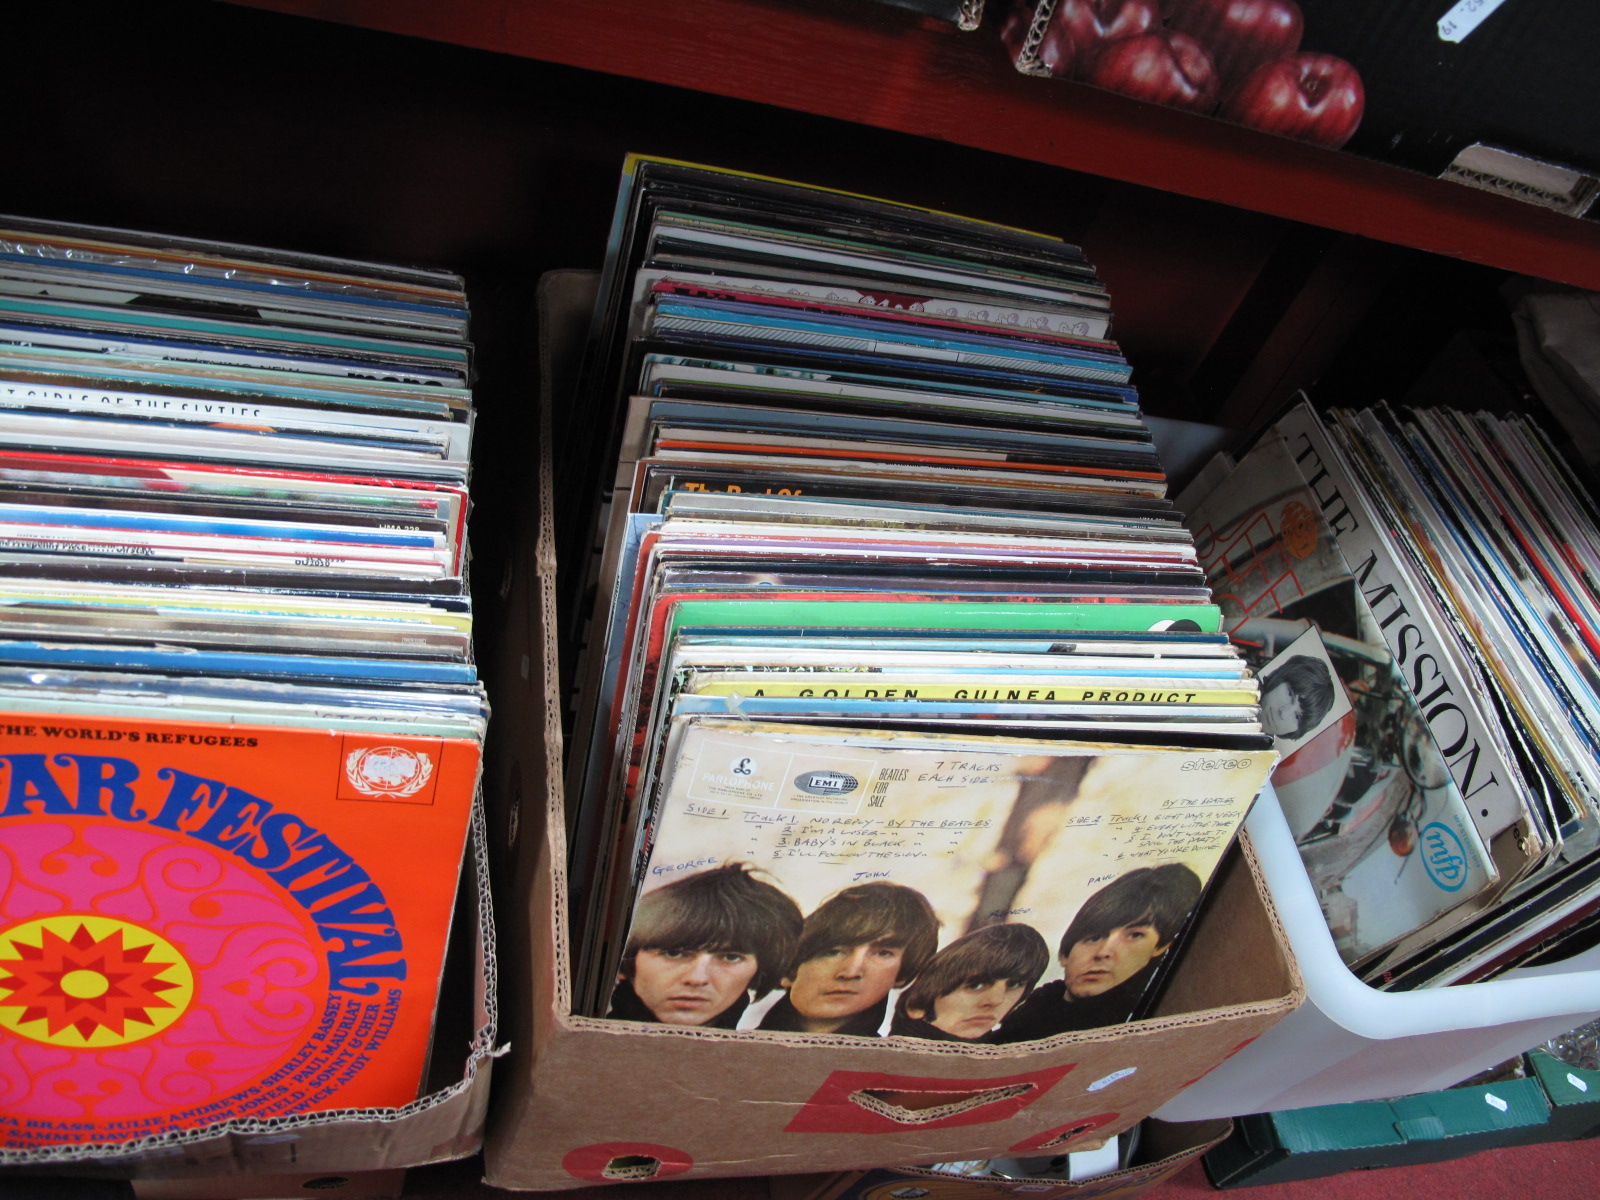 Lot 1021 - A Quantity of L.P's, (mostly 1960's and later) to include Beatles, Jeff Beck, The Mission, Four